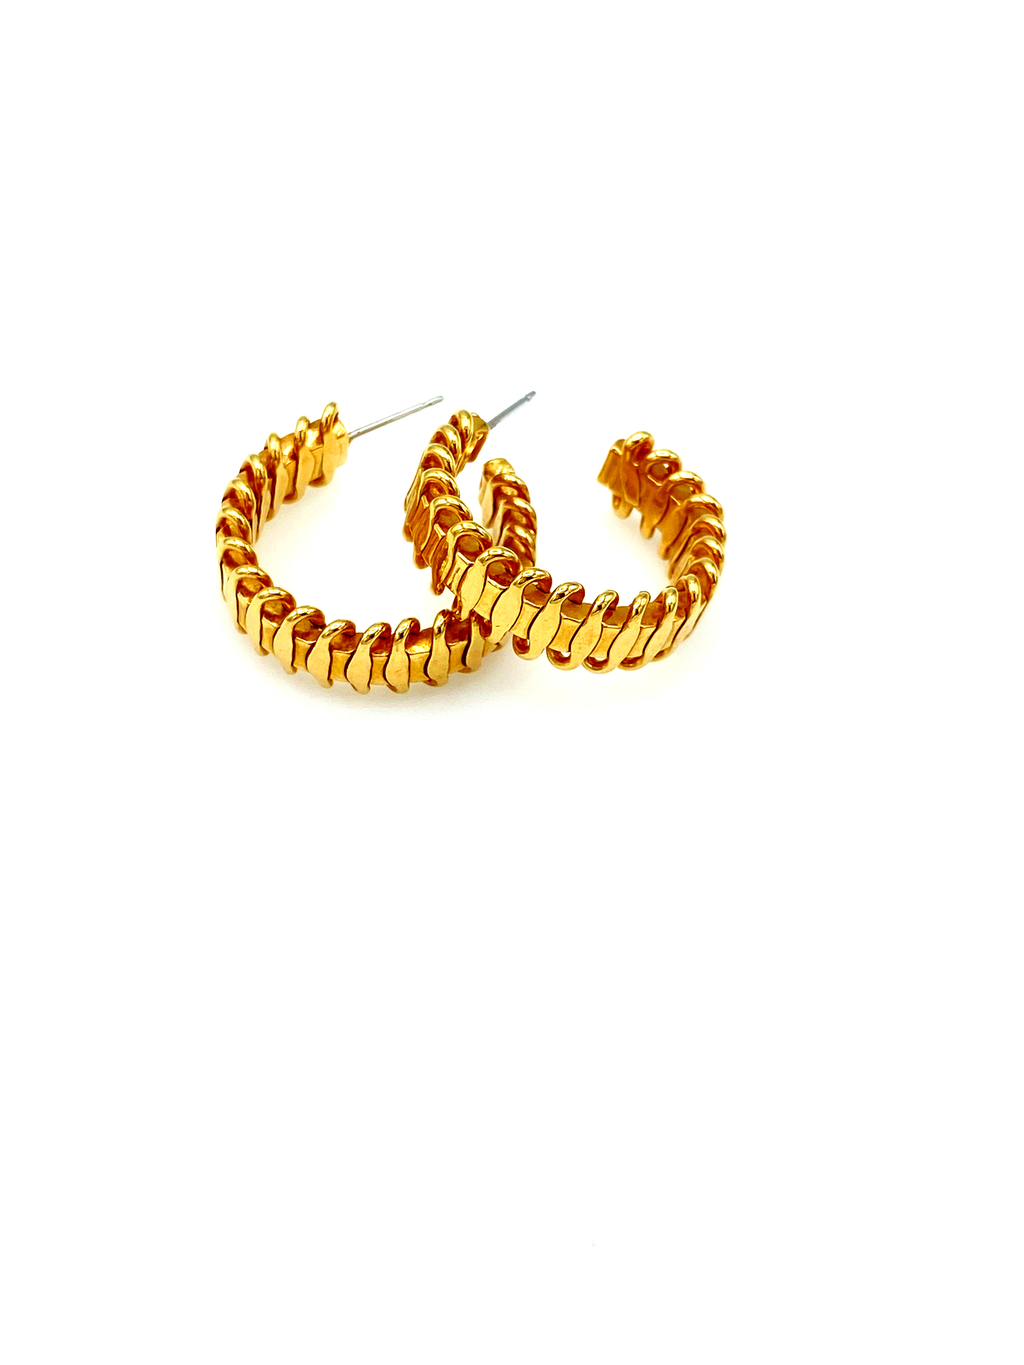 Zig Zag Medium Hoop Gold Pierced Earrings-Sustainable Fashion with Vintage Style-Trending Designer Fashion-24 Wishes